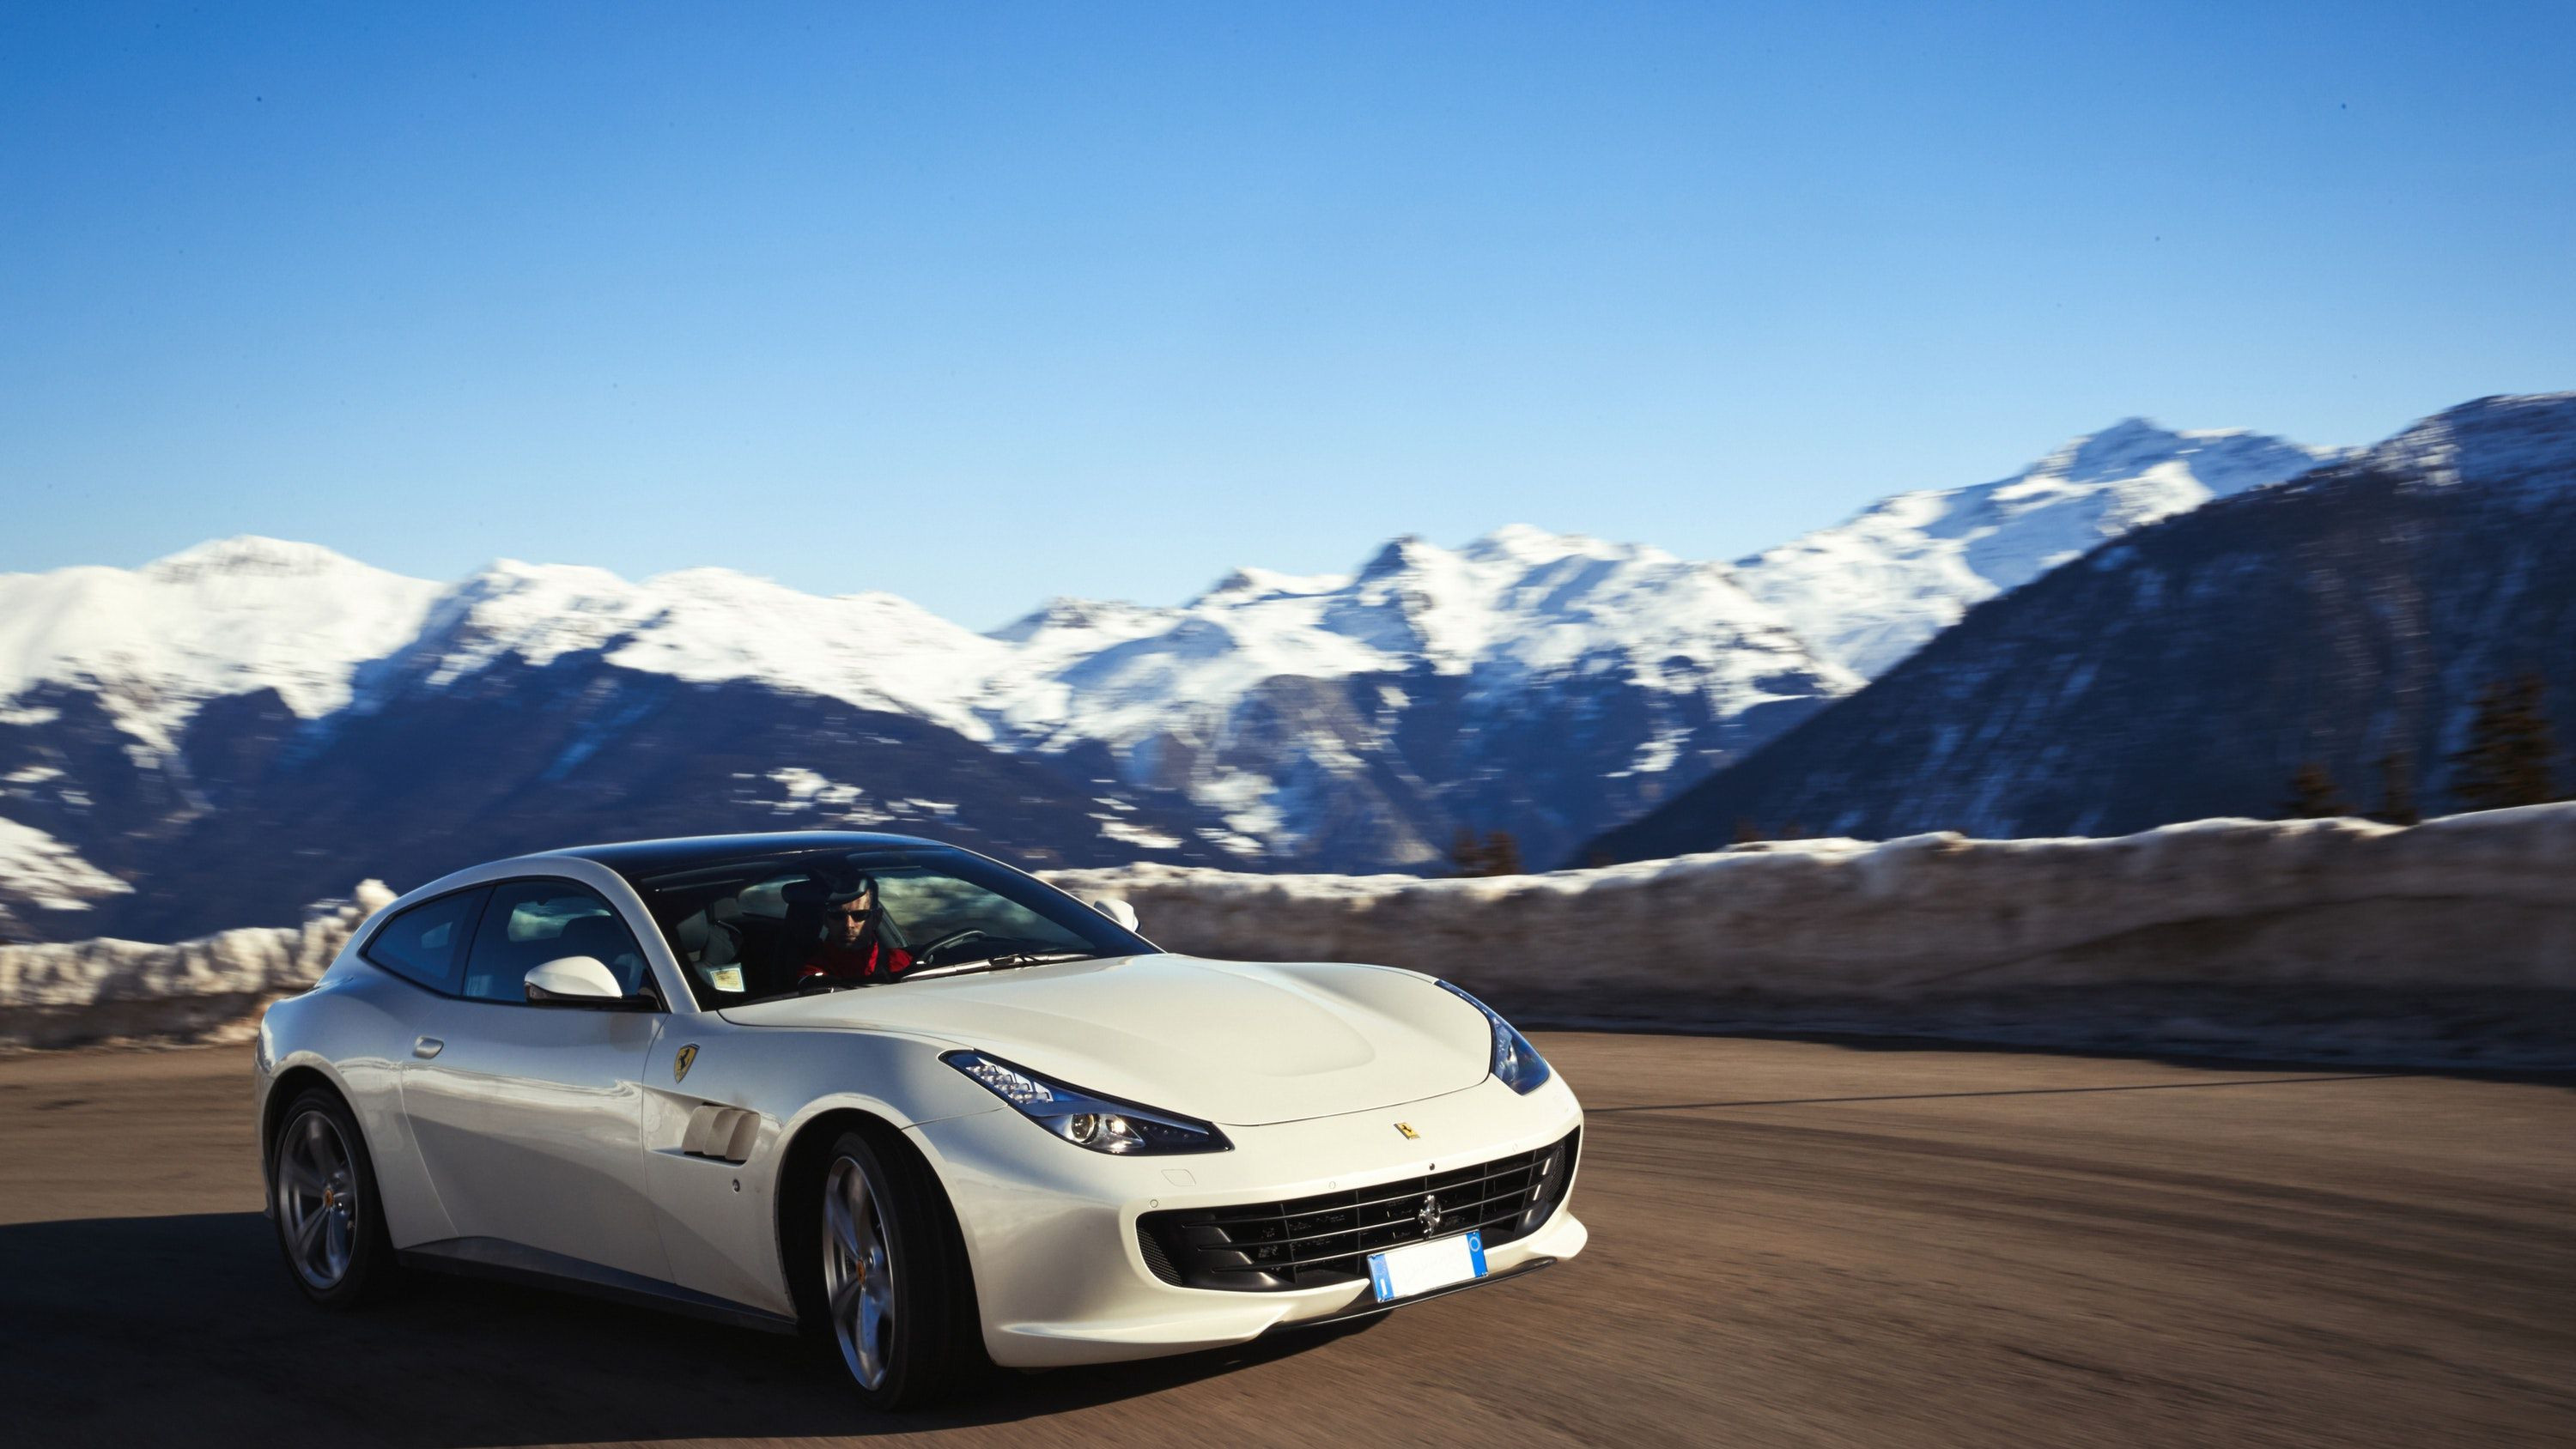 White Ferrari GTC4 drving along a road in the winter with snow on the mountains